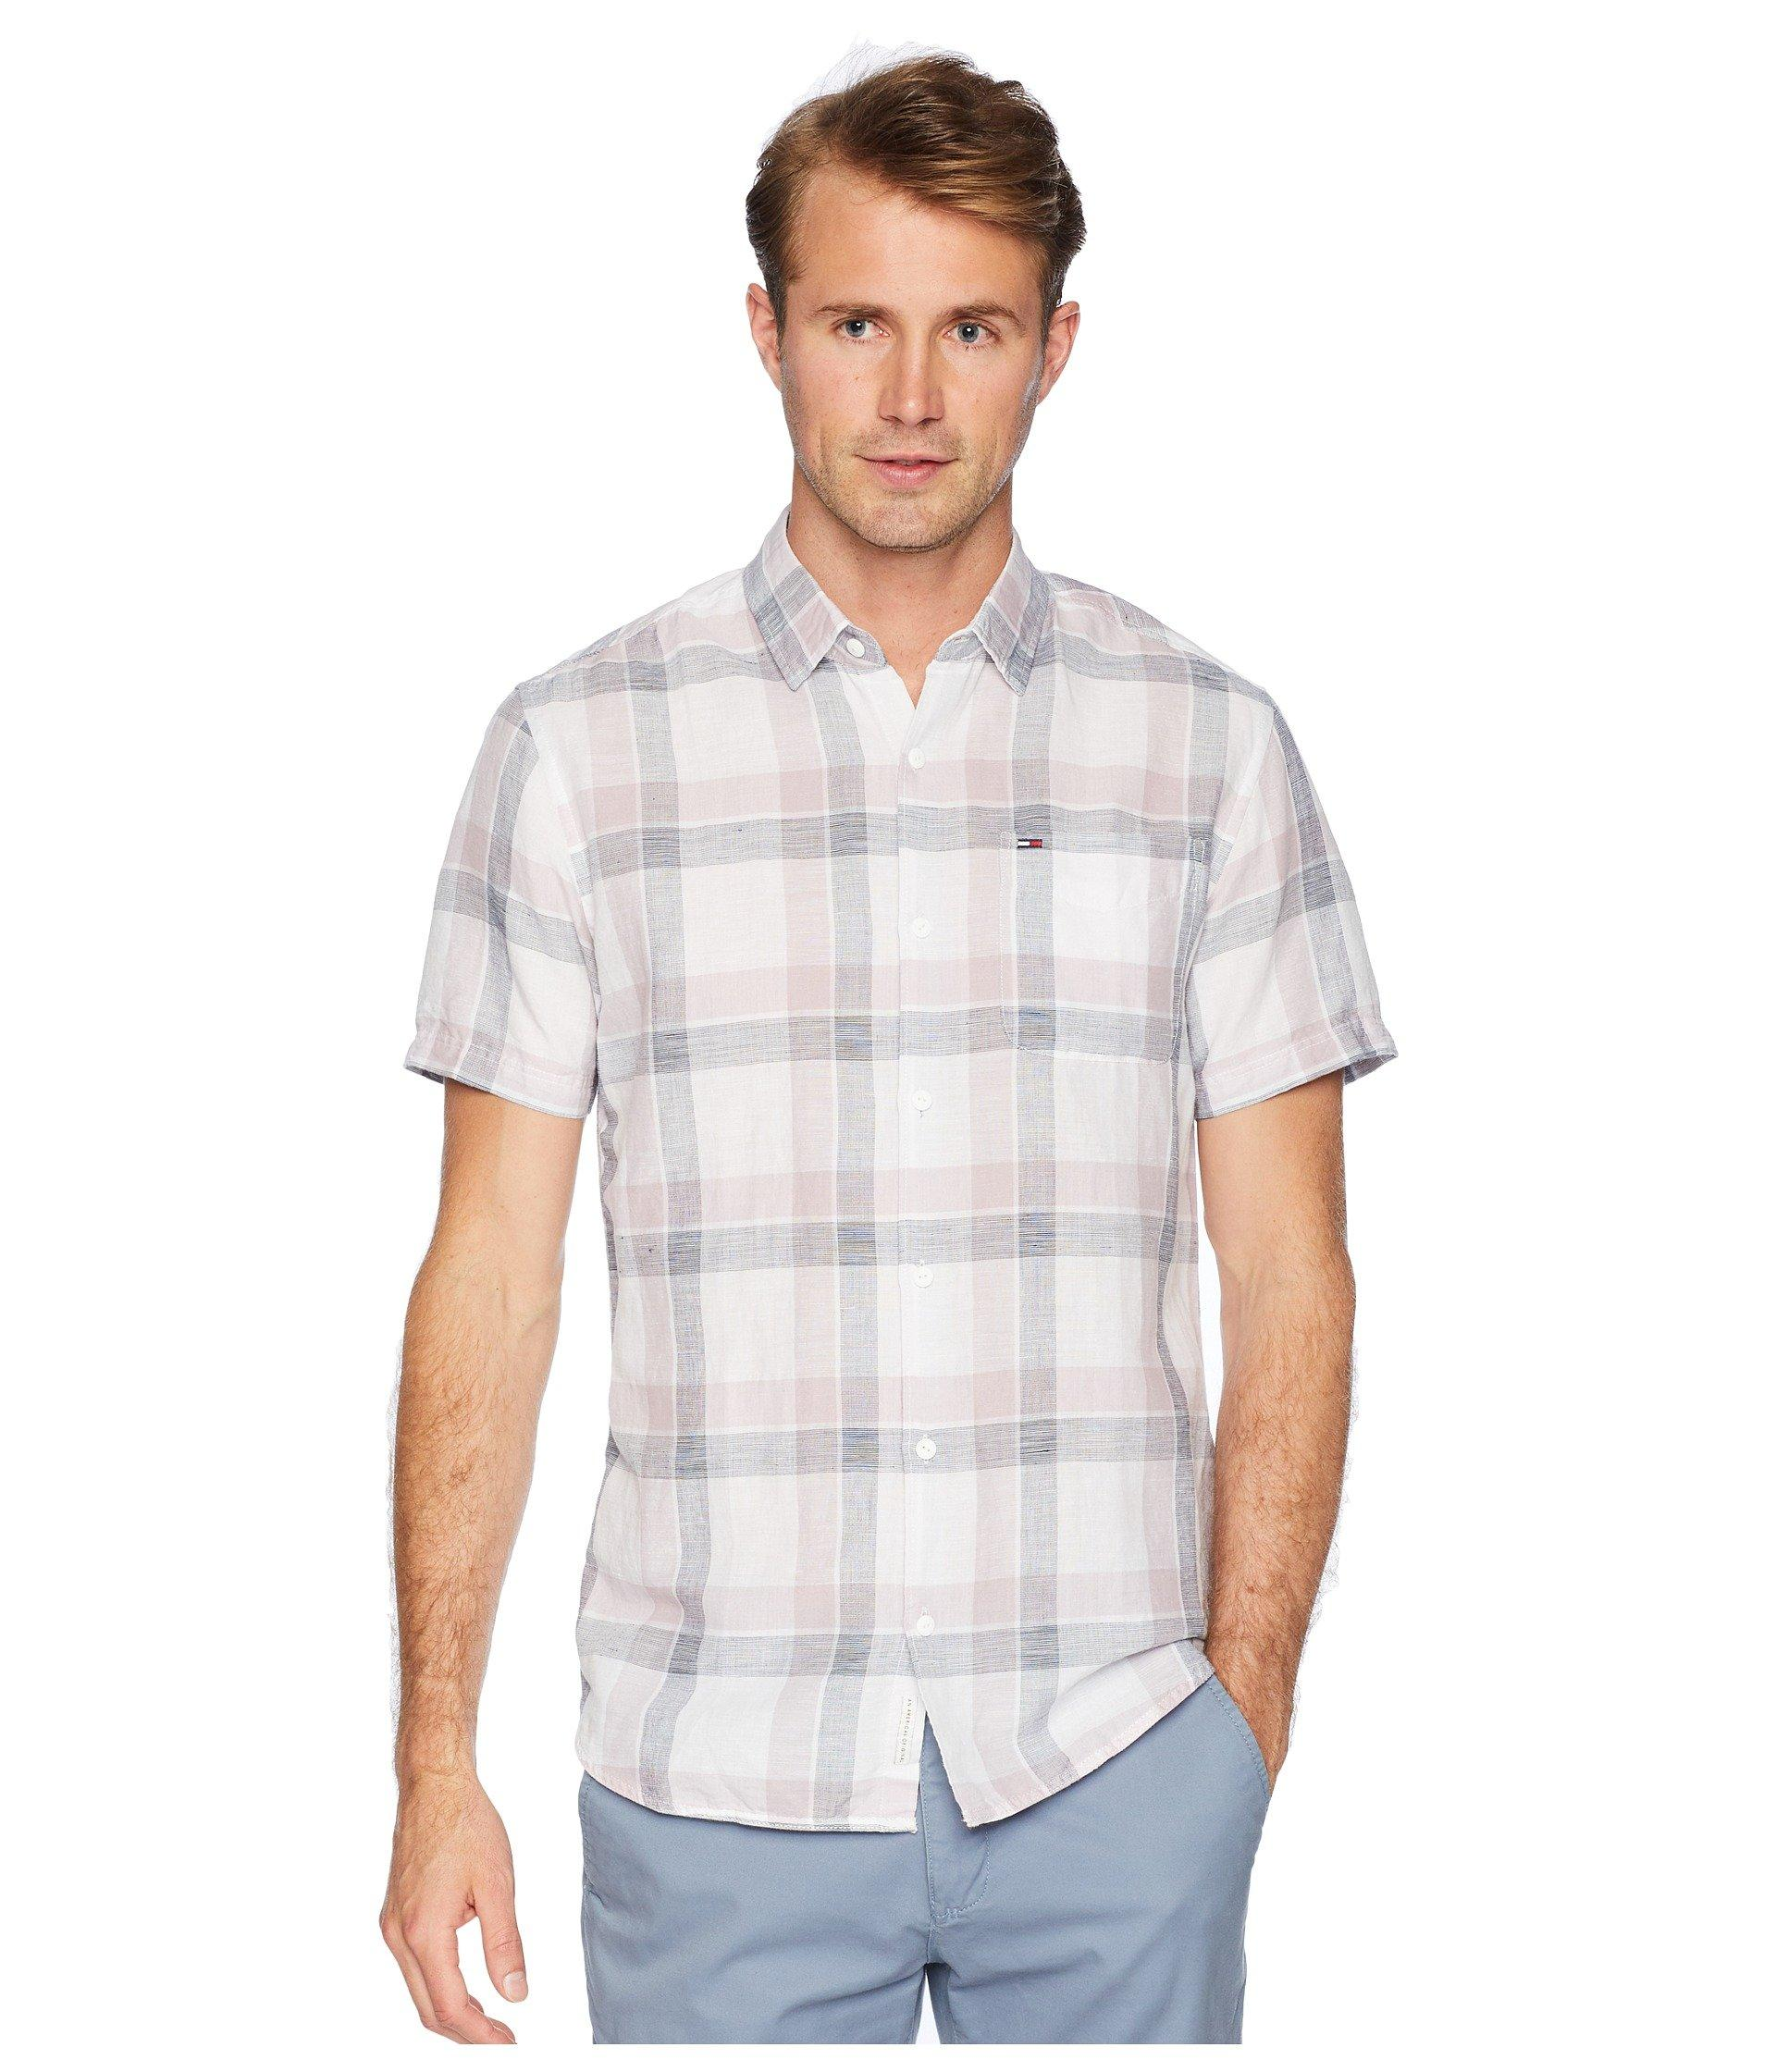 635c51c0 Lyst - Tommy Hilfiger Check Linen Short Sleeve Button Down Shirt in ...